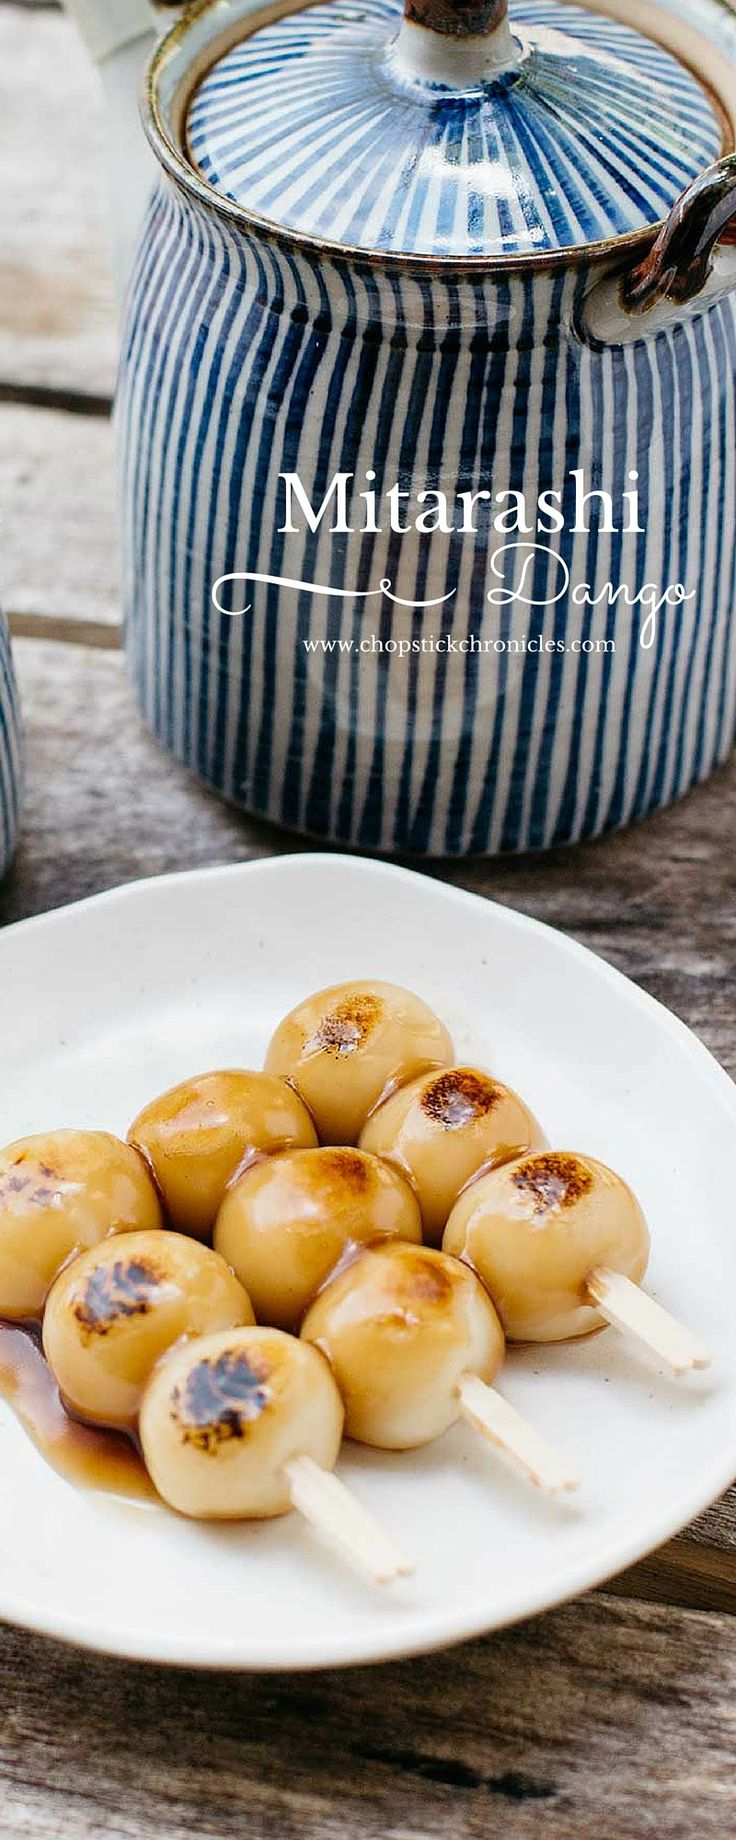 135 best japanese recipes images on pinterest japanese cuisine mitarashi dango is a delicious japanese sweet made from only two ingredients silken tofu and forumfinder Gallery